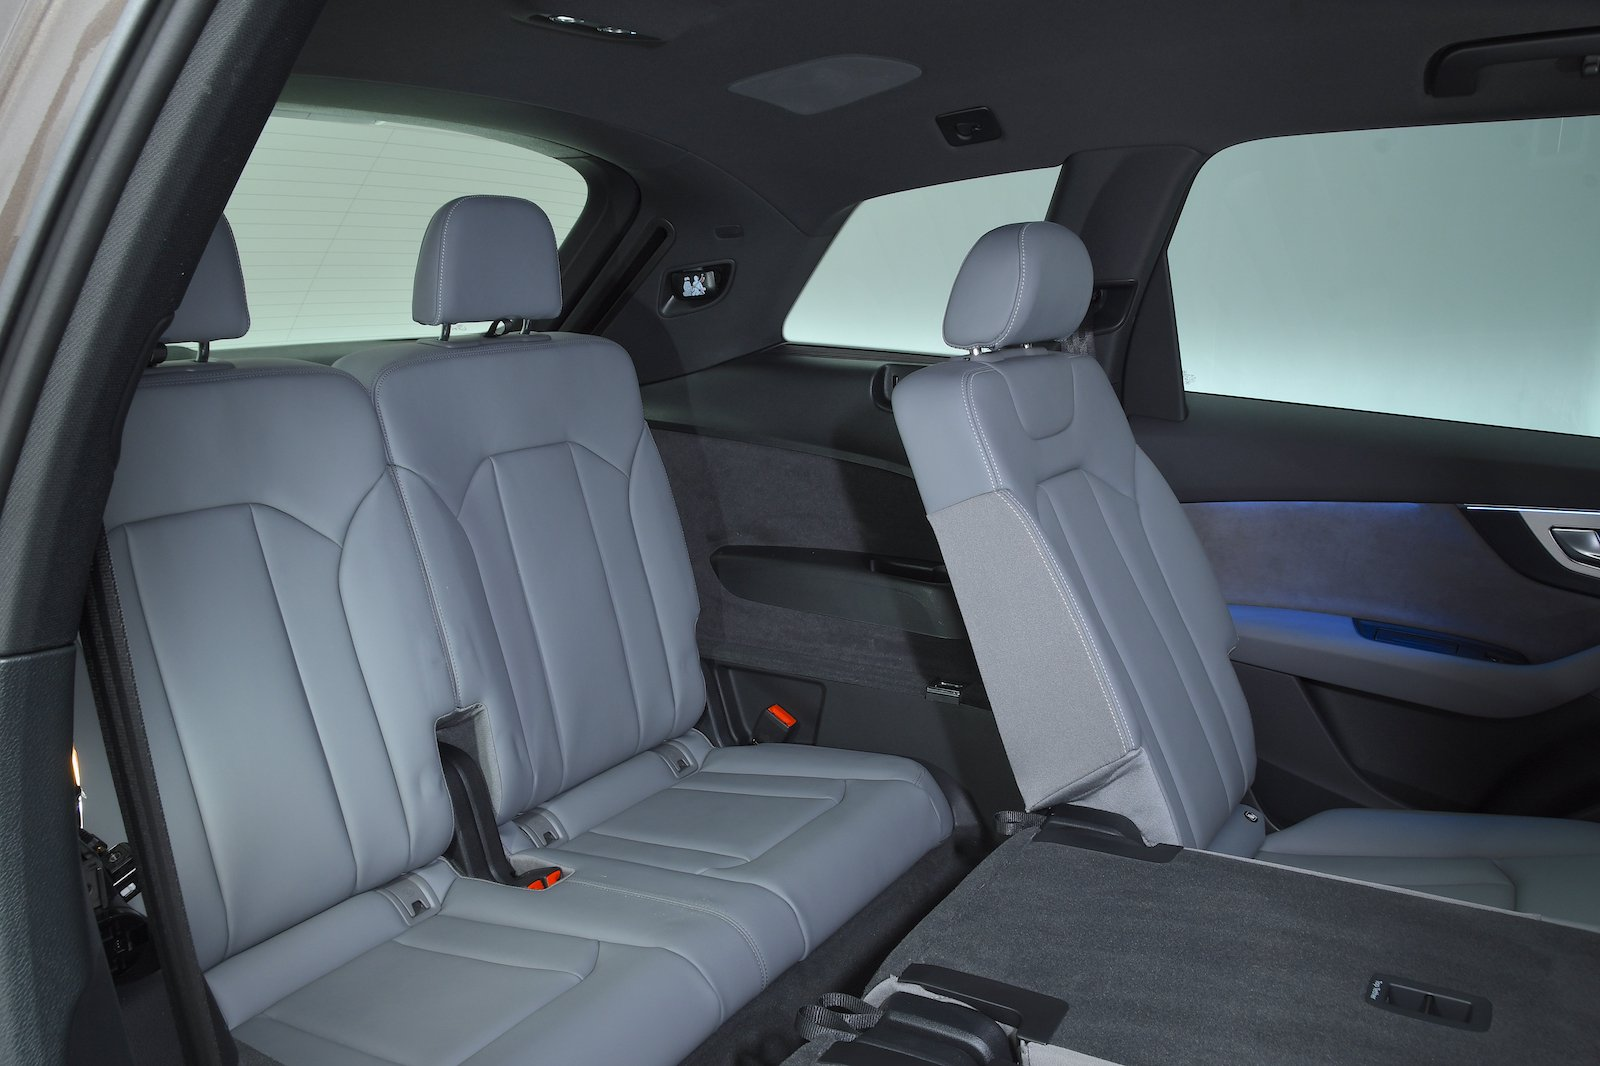 Audi Q7 Boot Space Size Seats What Car